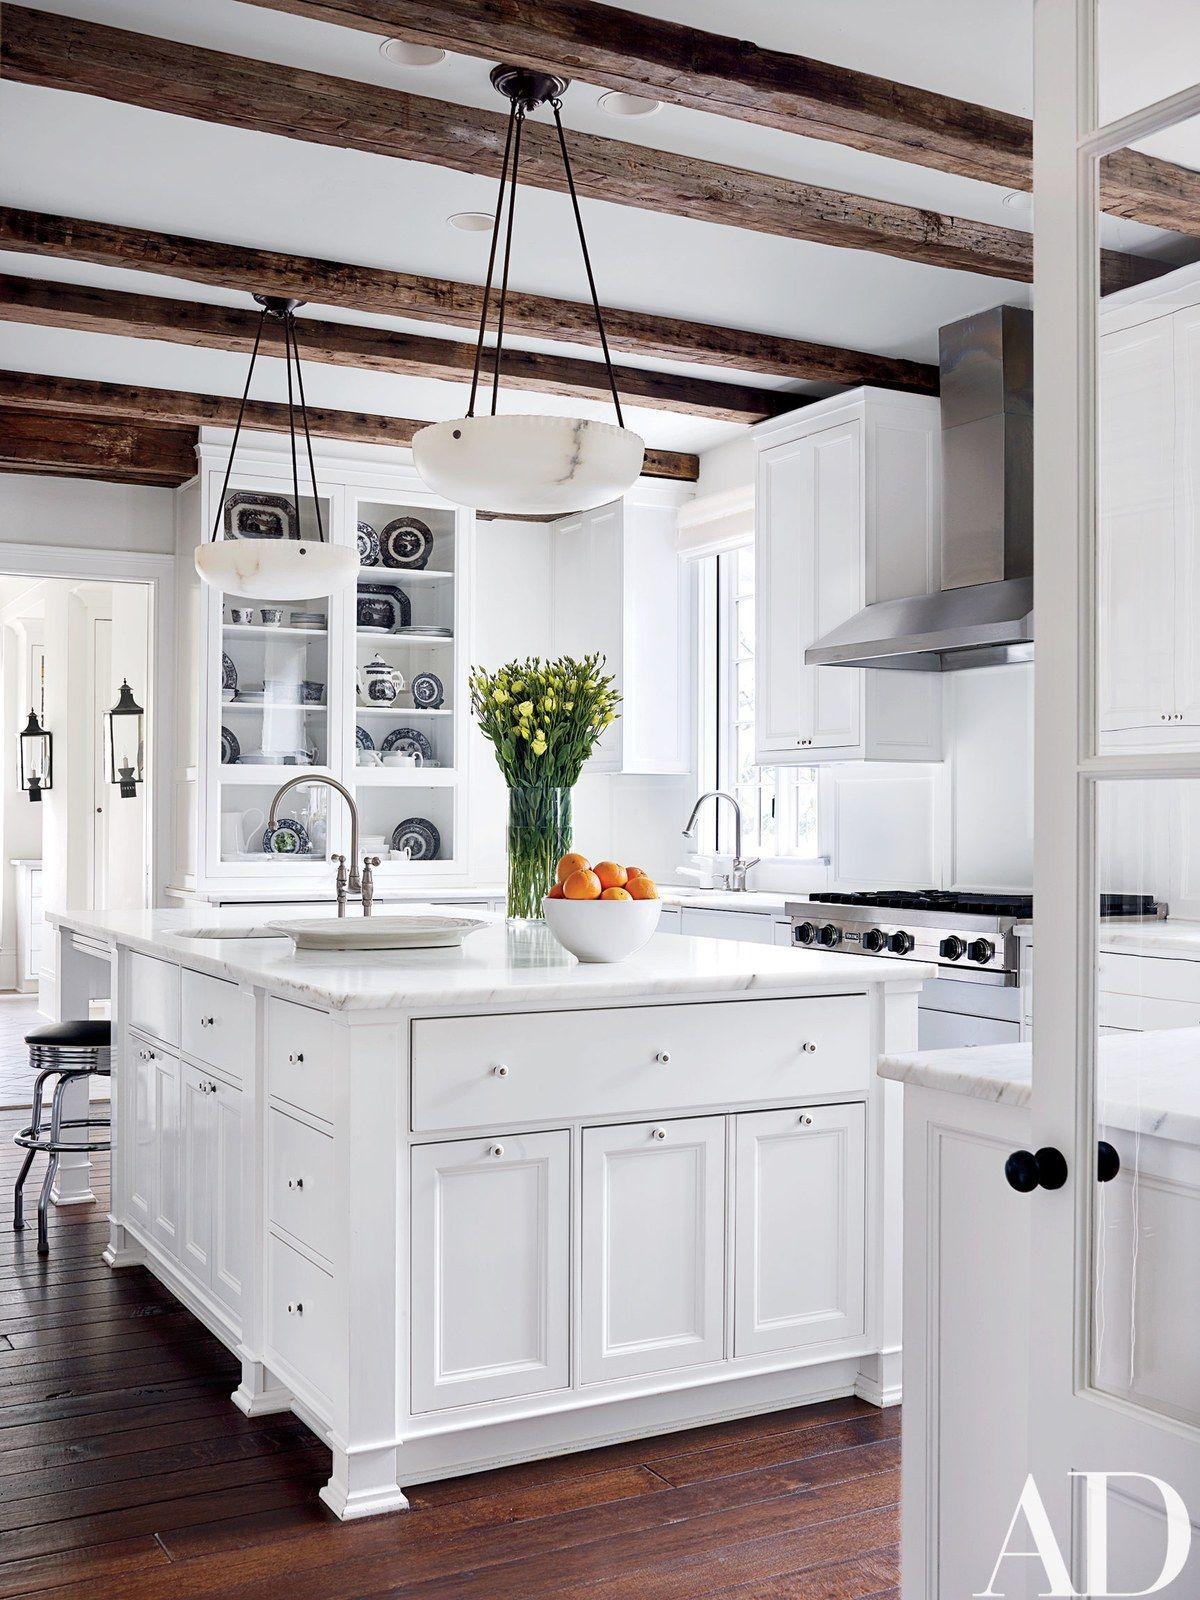 Reclaimed-oak beams shelter the kitchen, which is equipped with a Viking hood and cooktop and Calacatta gold marble counters; the alabaster pendant lights are by Urban Archaeology, and the walls and cabinetry are painted in a Darryl Carter white for Benjamin Moore.